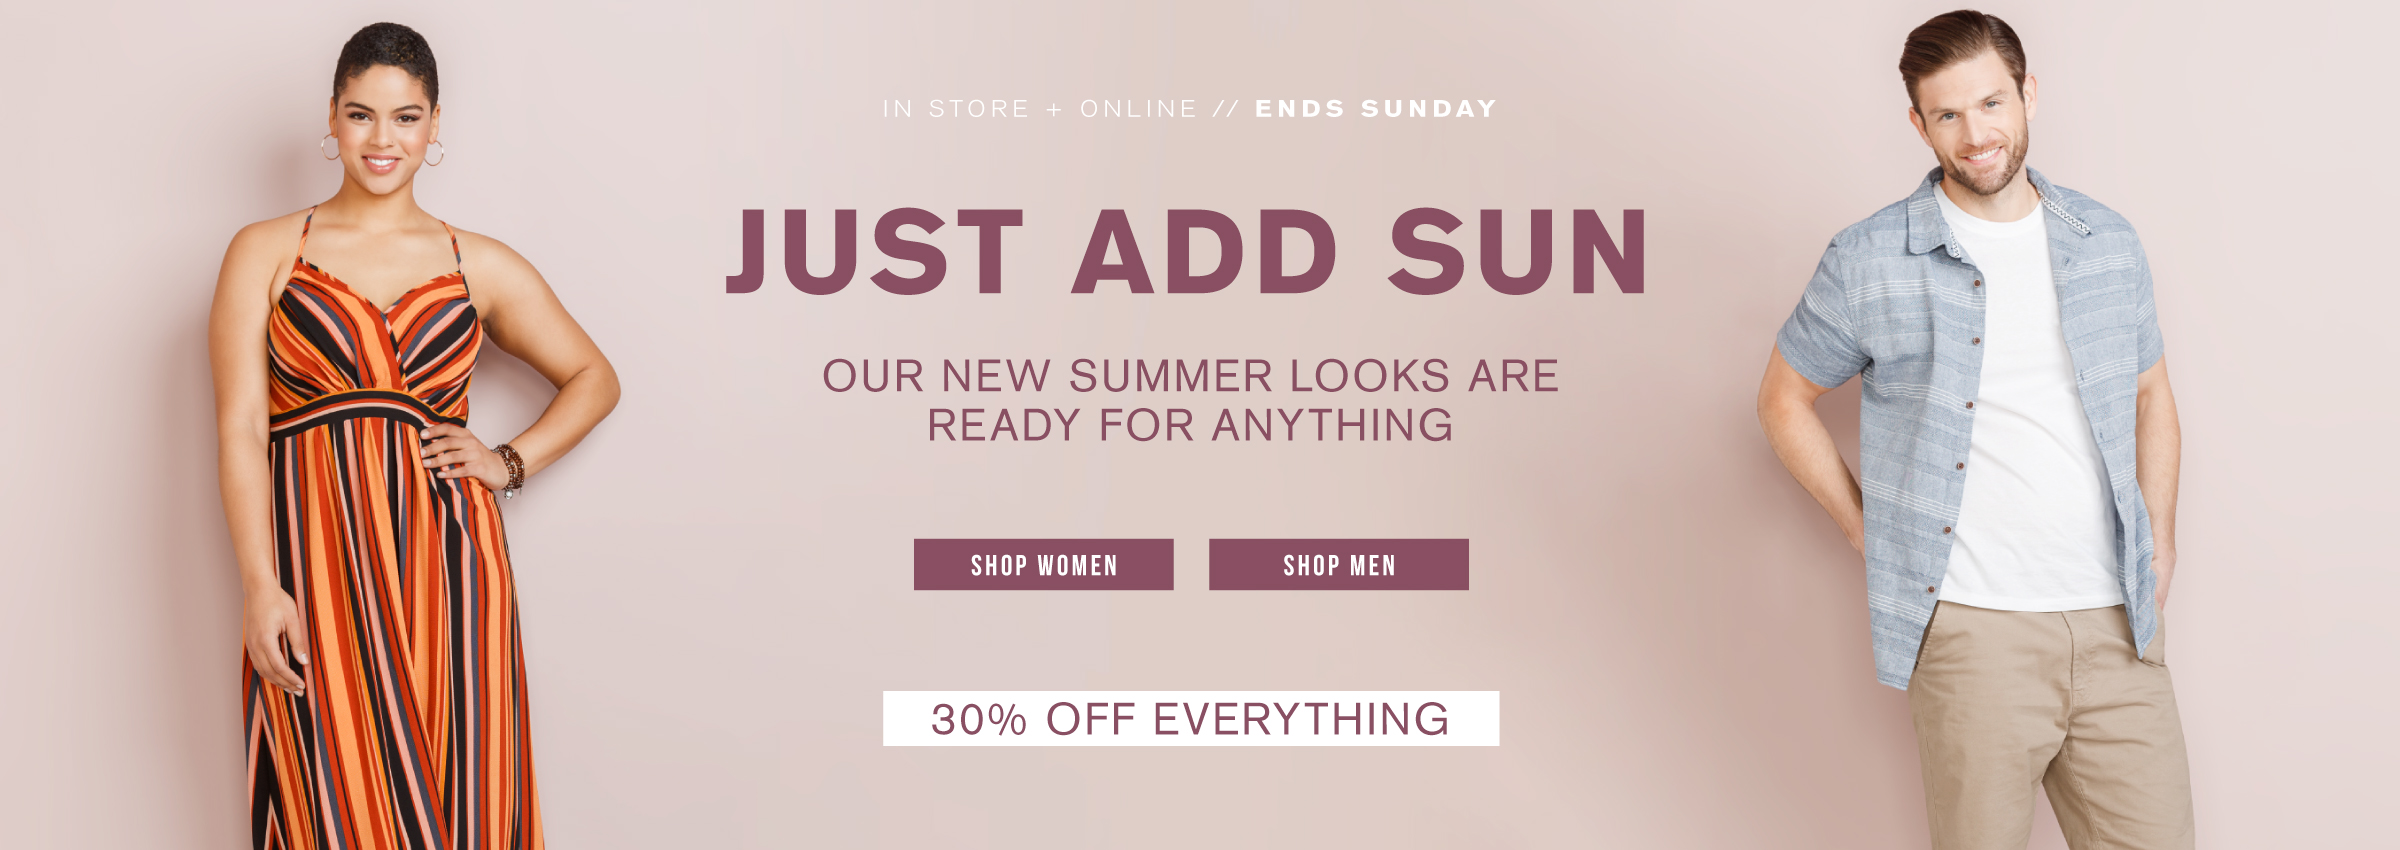 Just add sun. Our new summer looks are ready for anything. Shop women. Shop men.